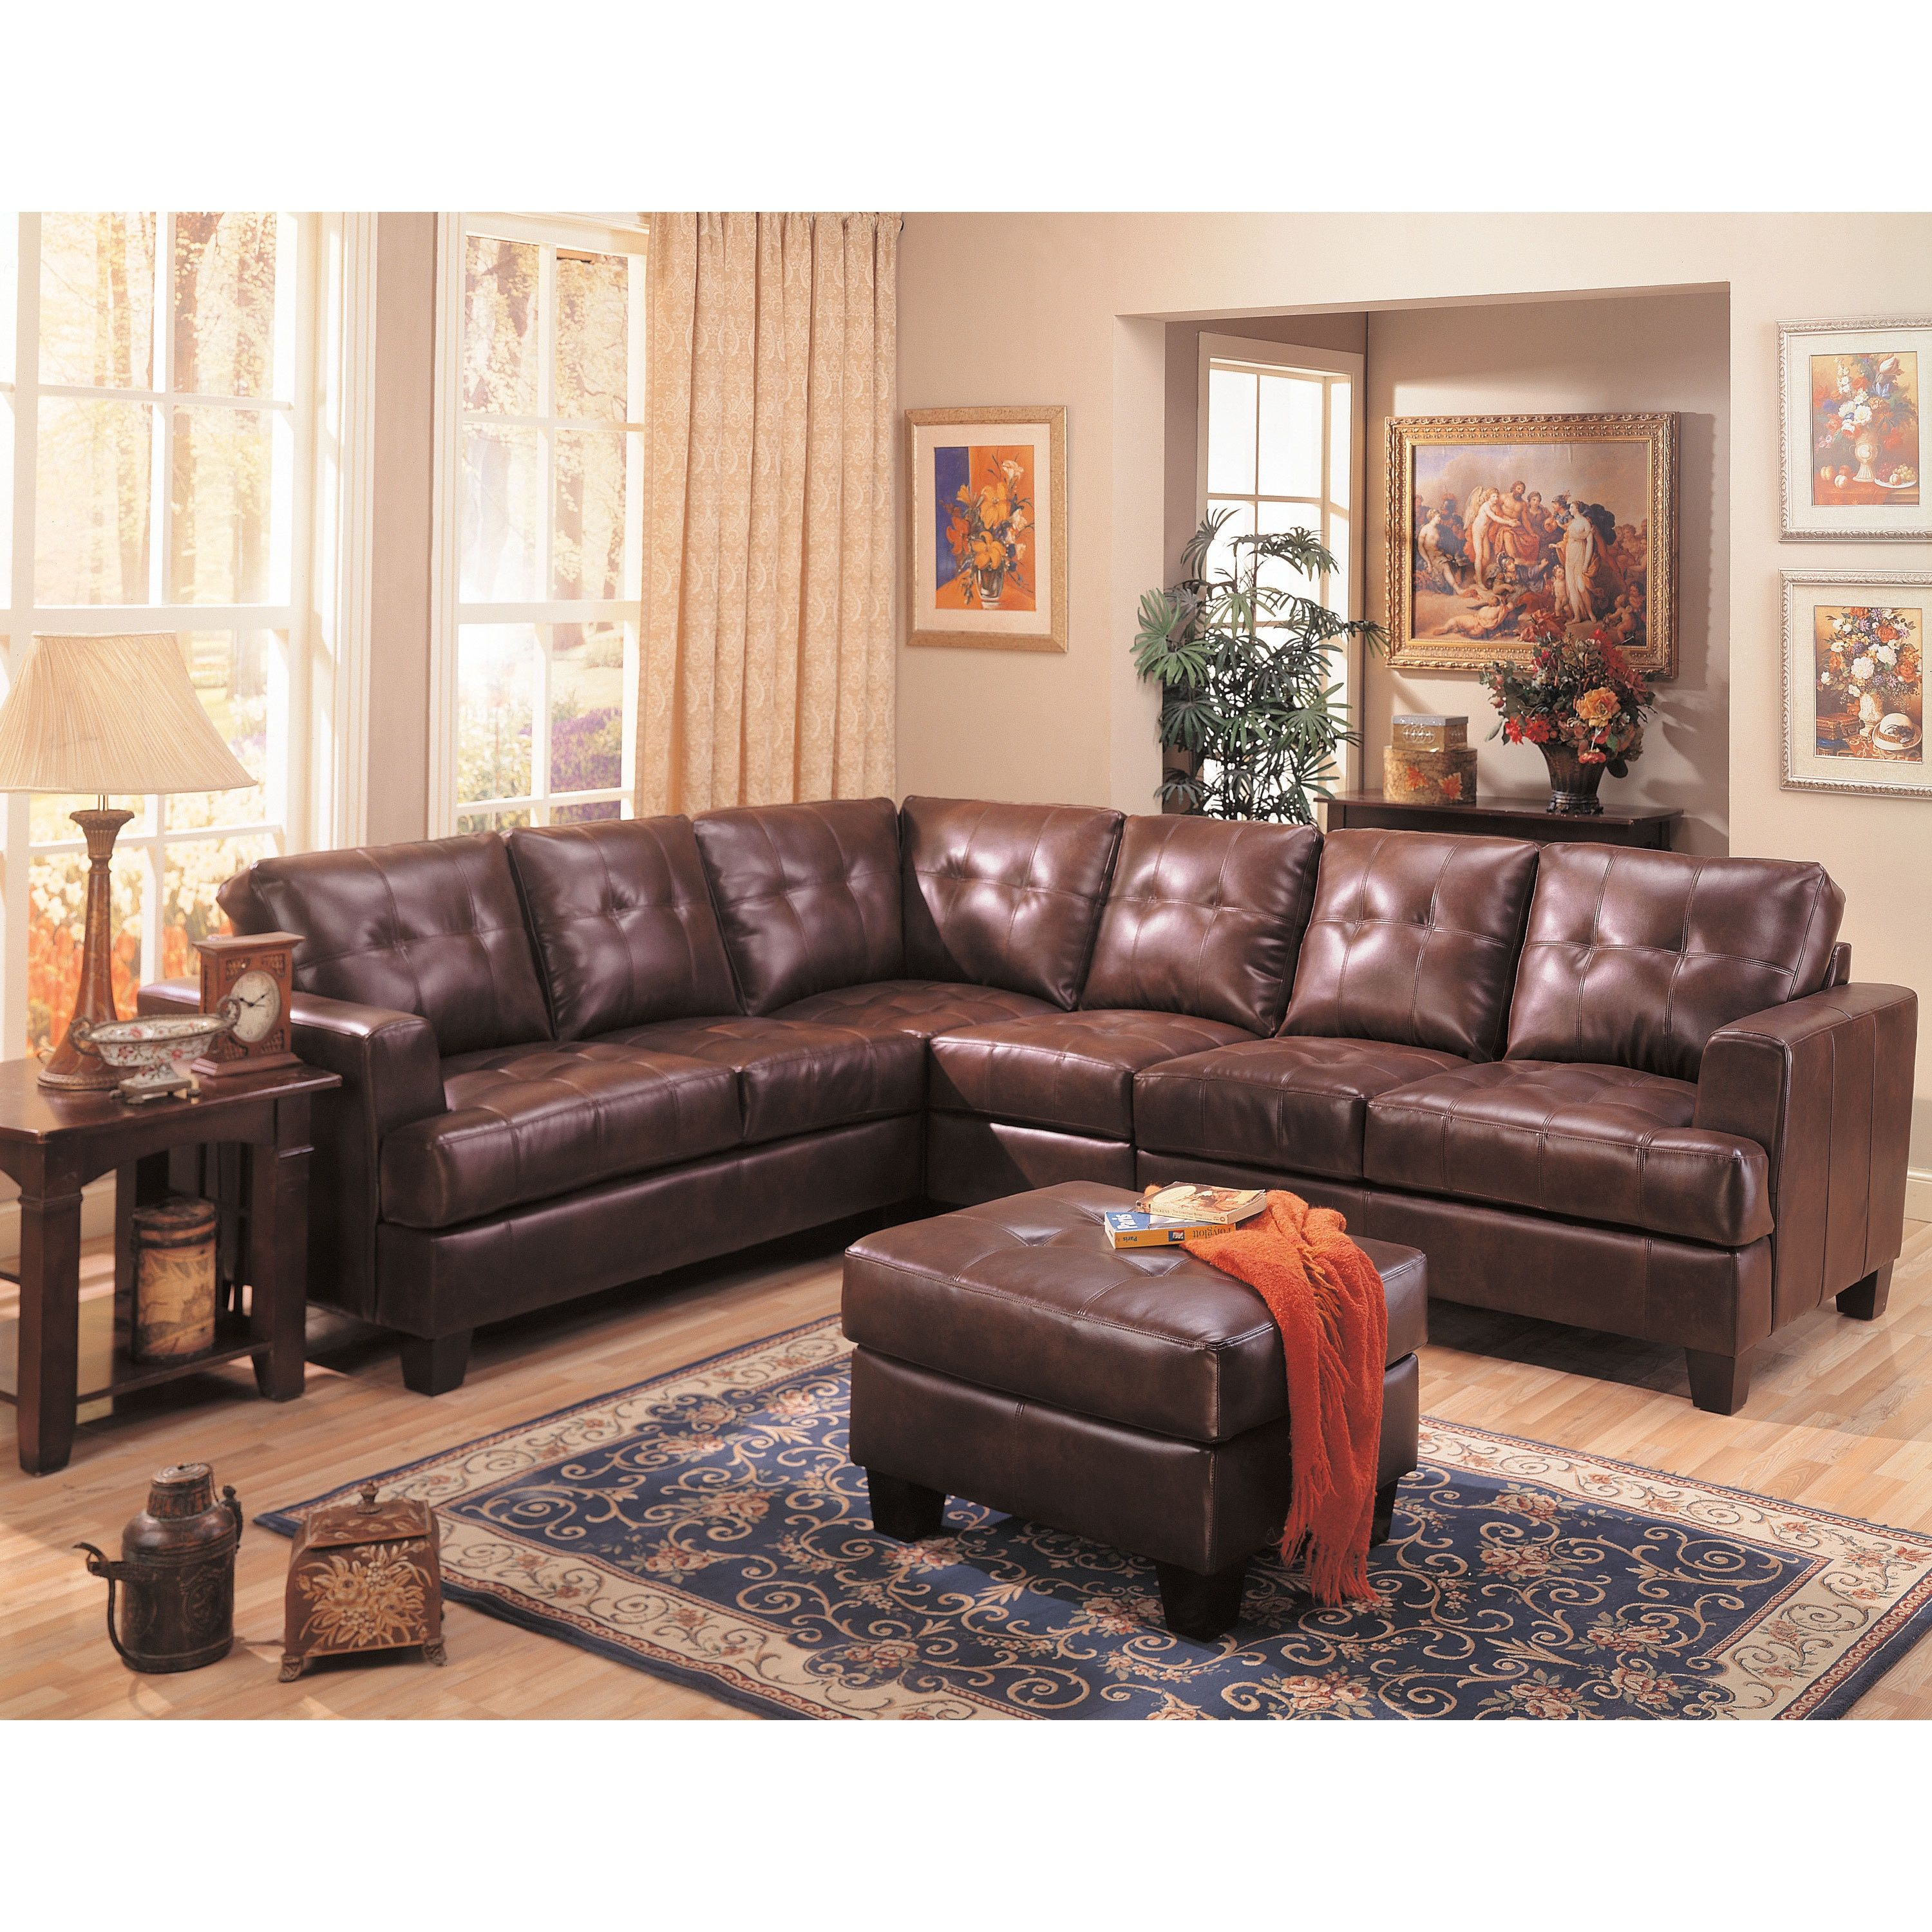 Samuel Dark Brown Bonded Leather Sectional Sofa Products Leather with regard to 10 Awesome Ideas How to Craft Leather Living Rooms Sets